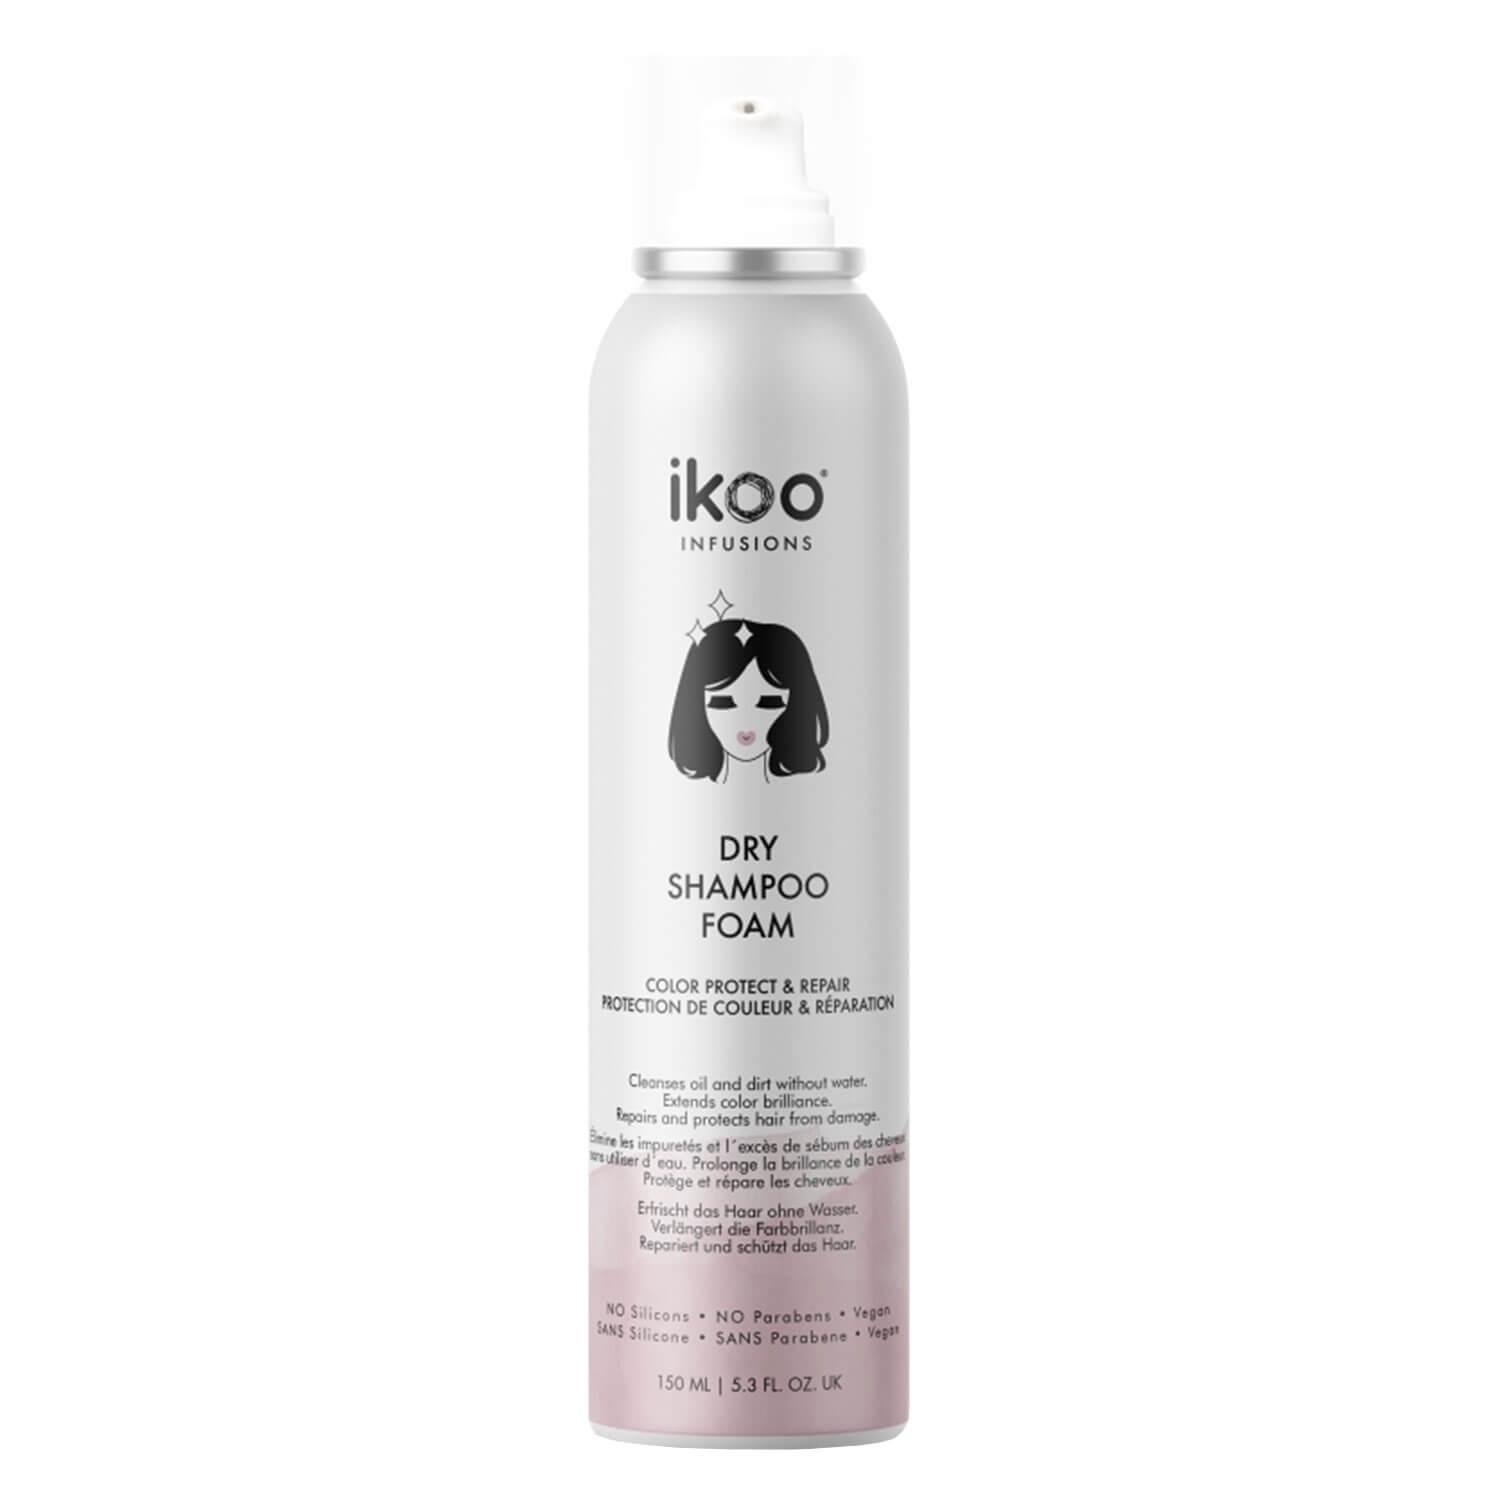 ikoo infusions - Dry Shampoo Foam Color Protect & Repair